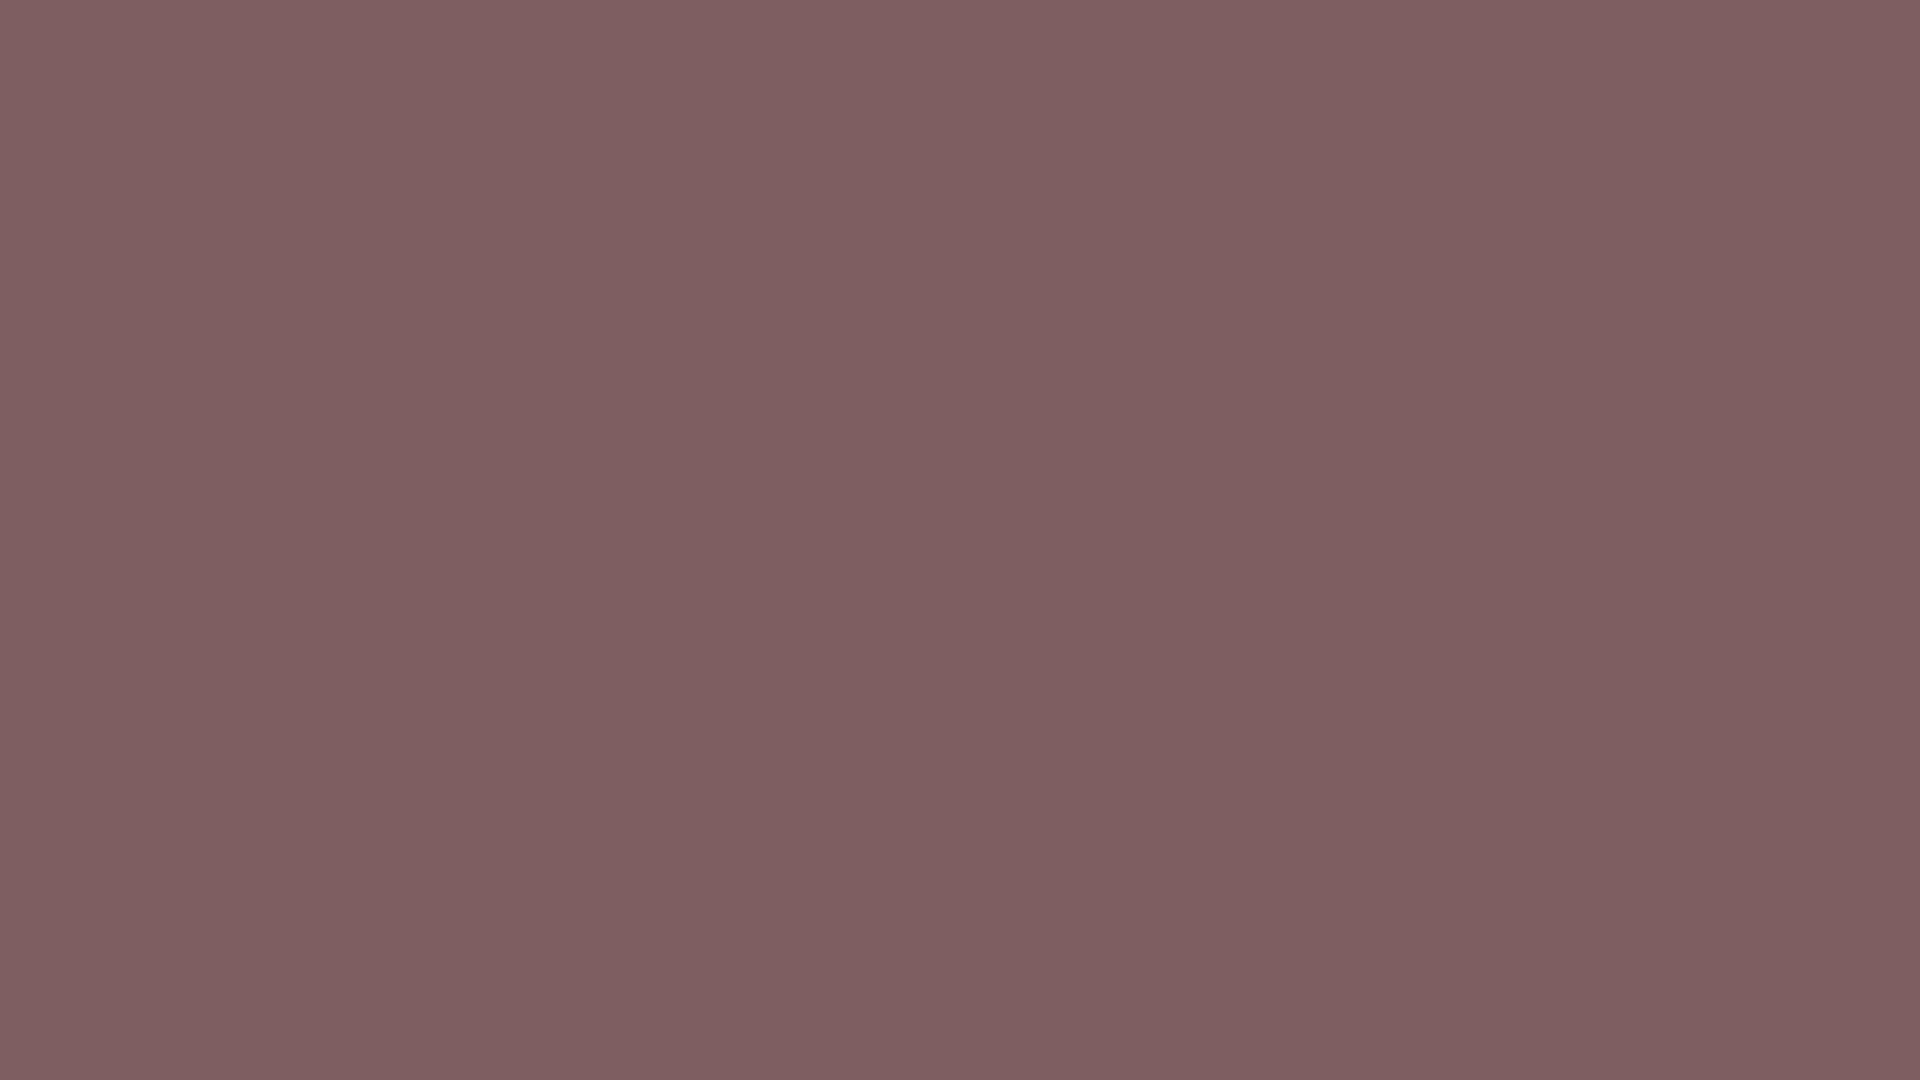 1920x1080 Deep Taupe Solid Color Background